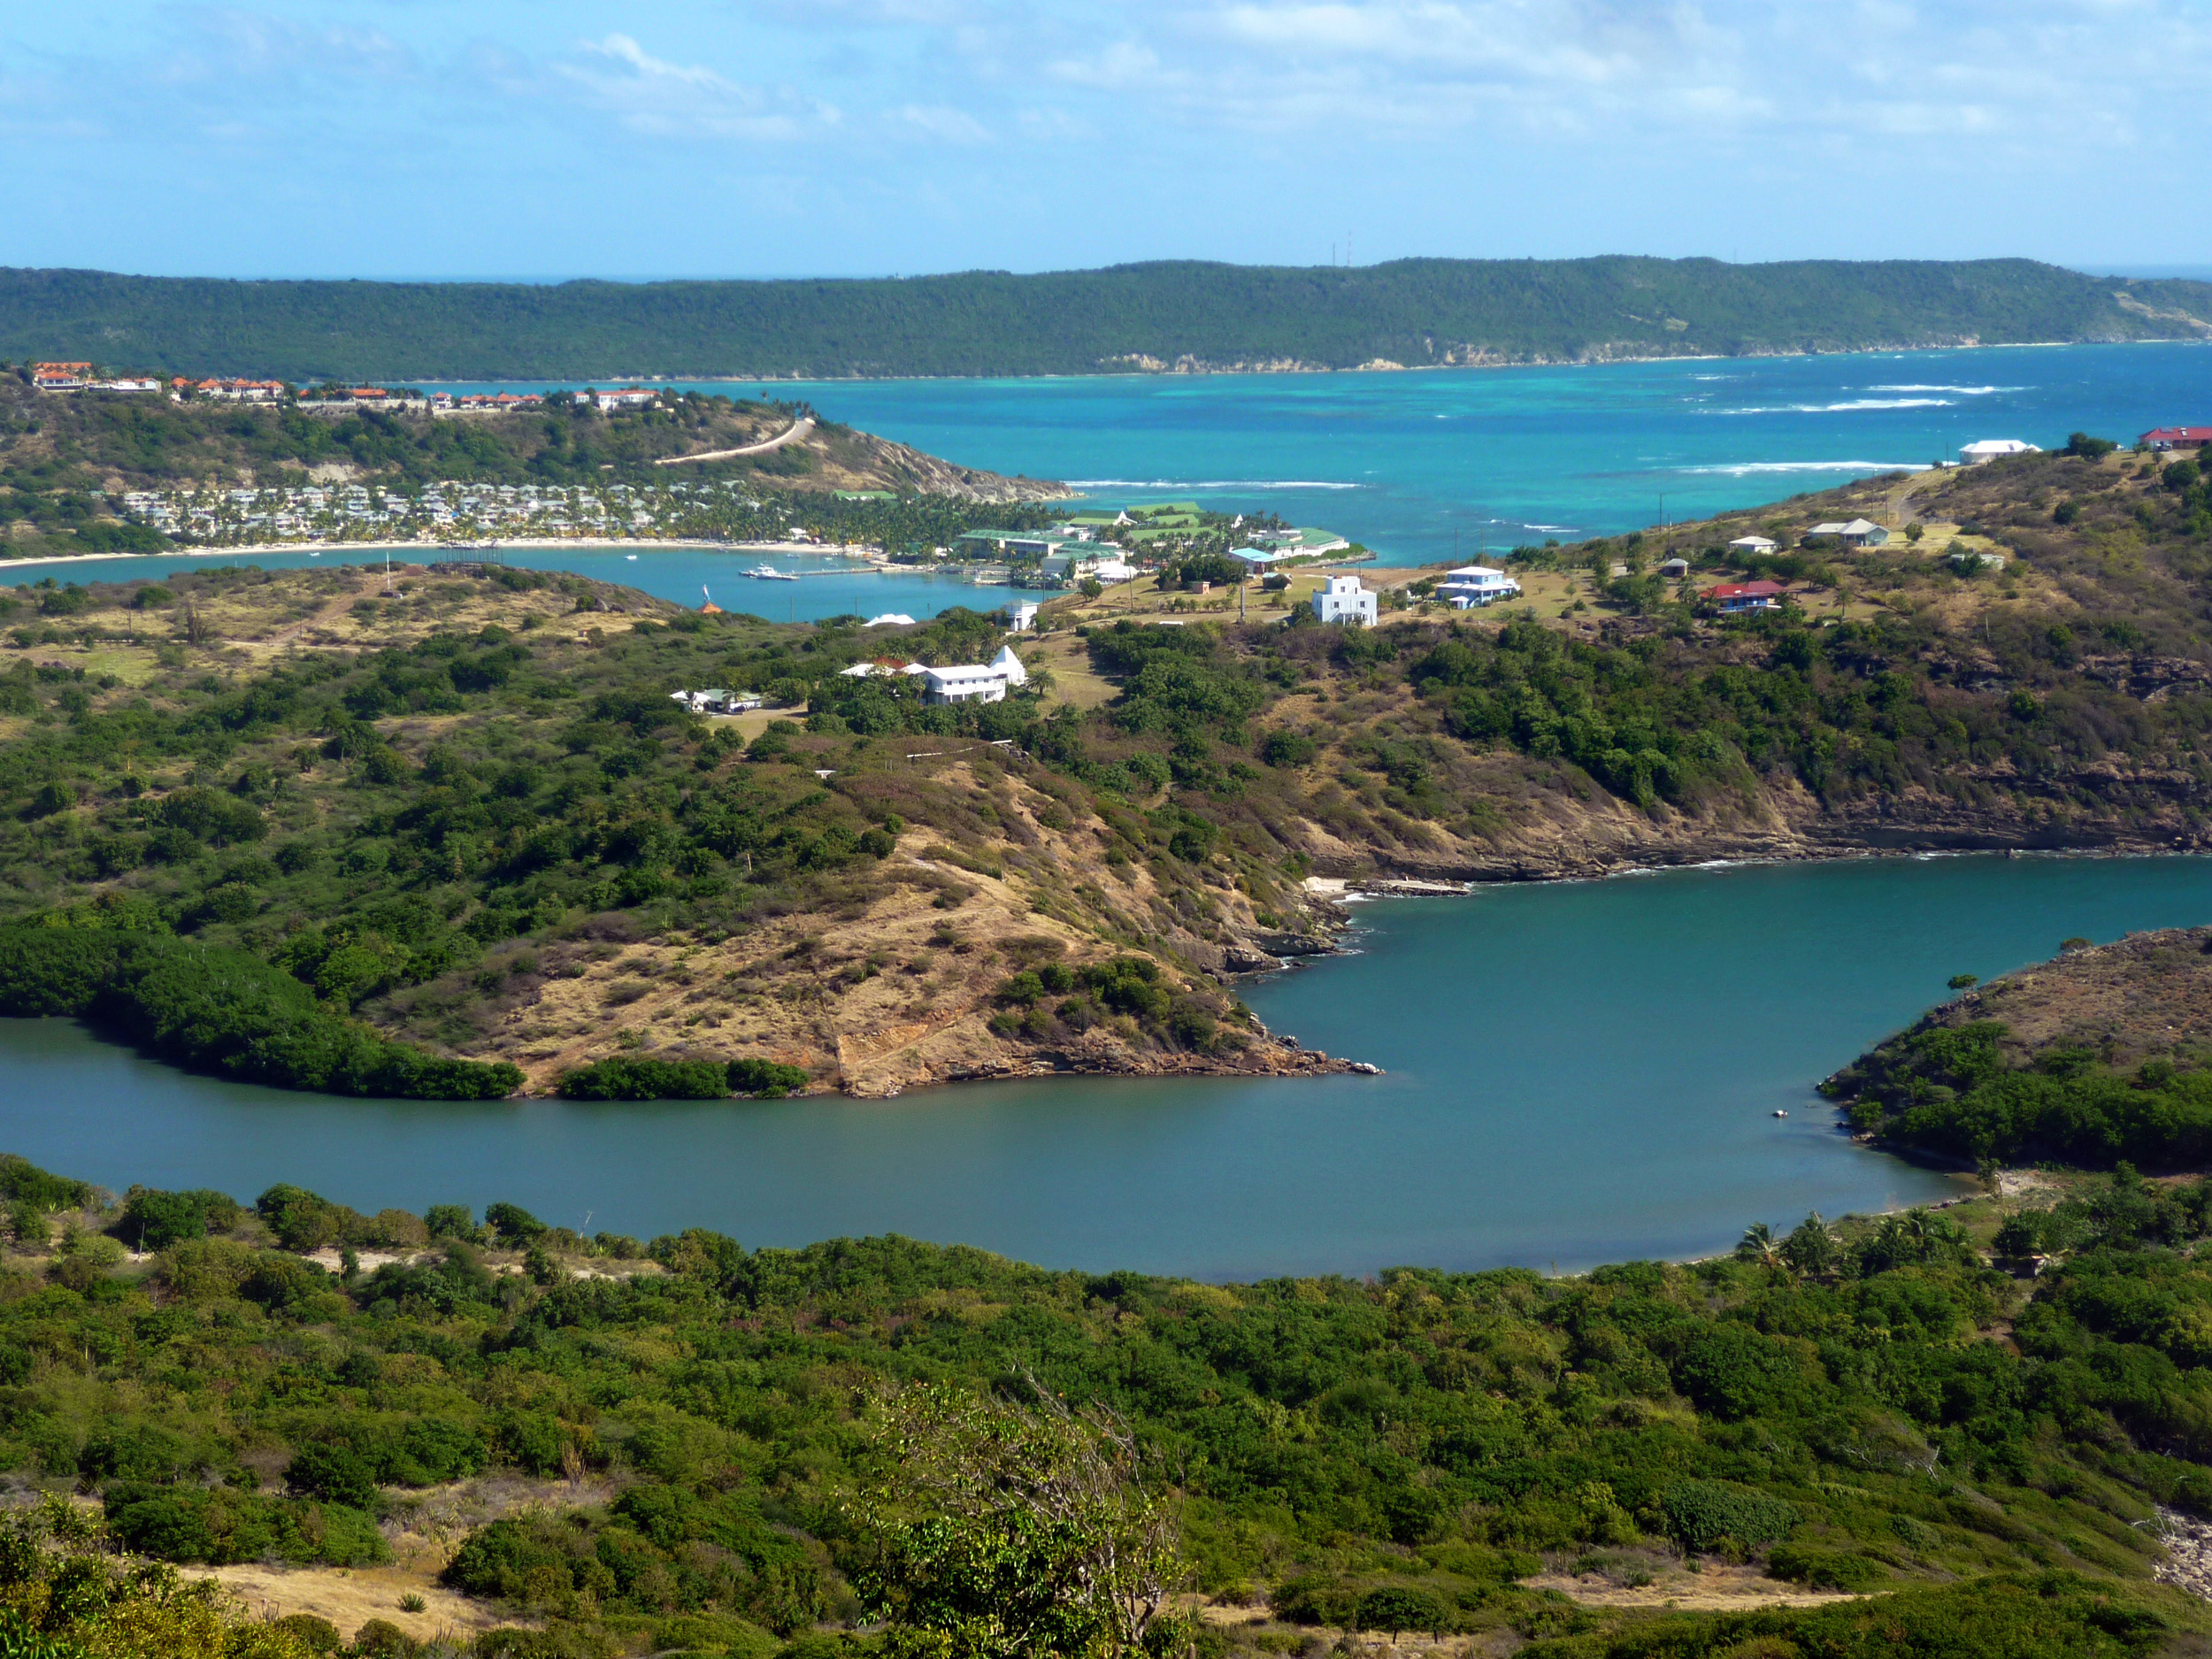 a view of the island of antigua